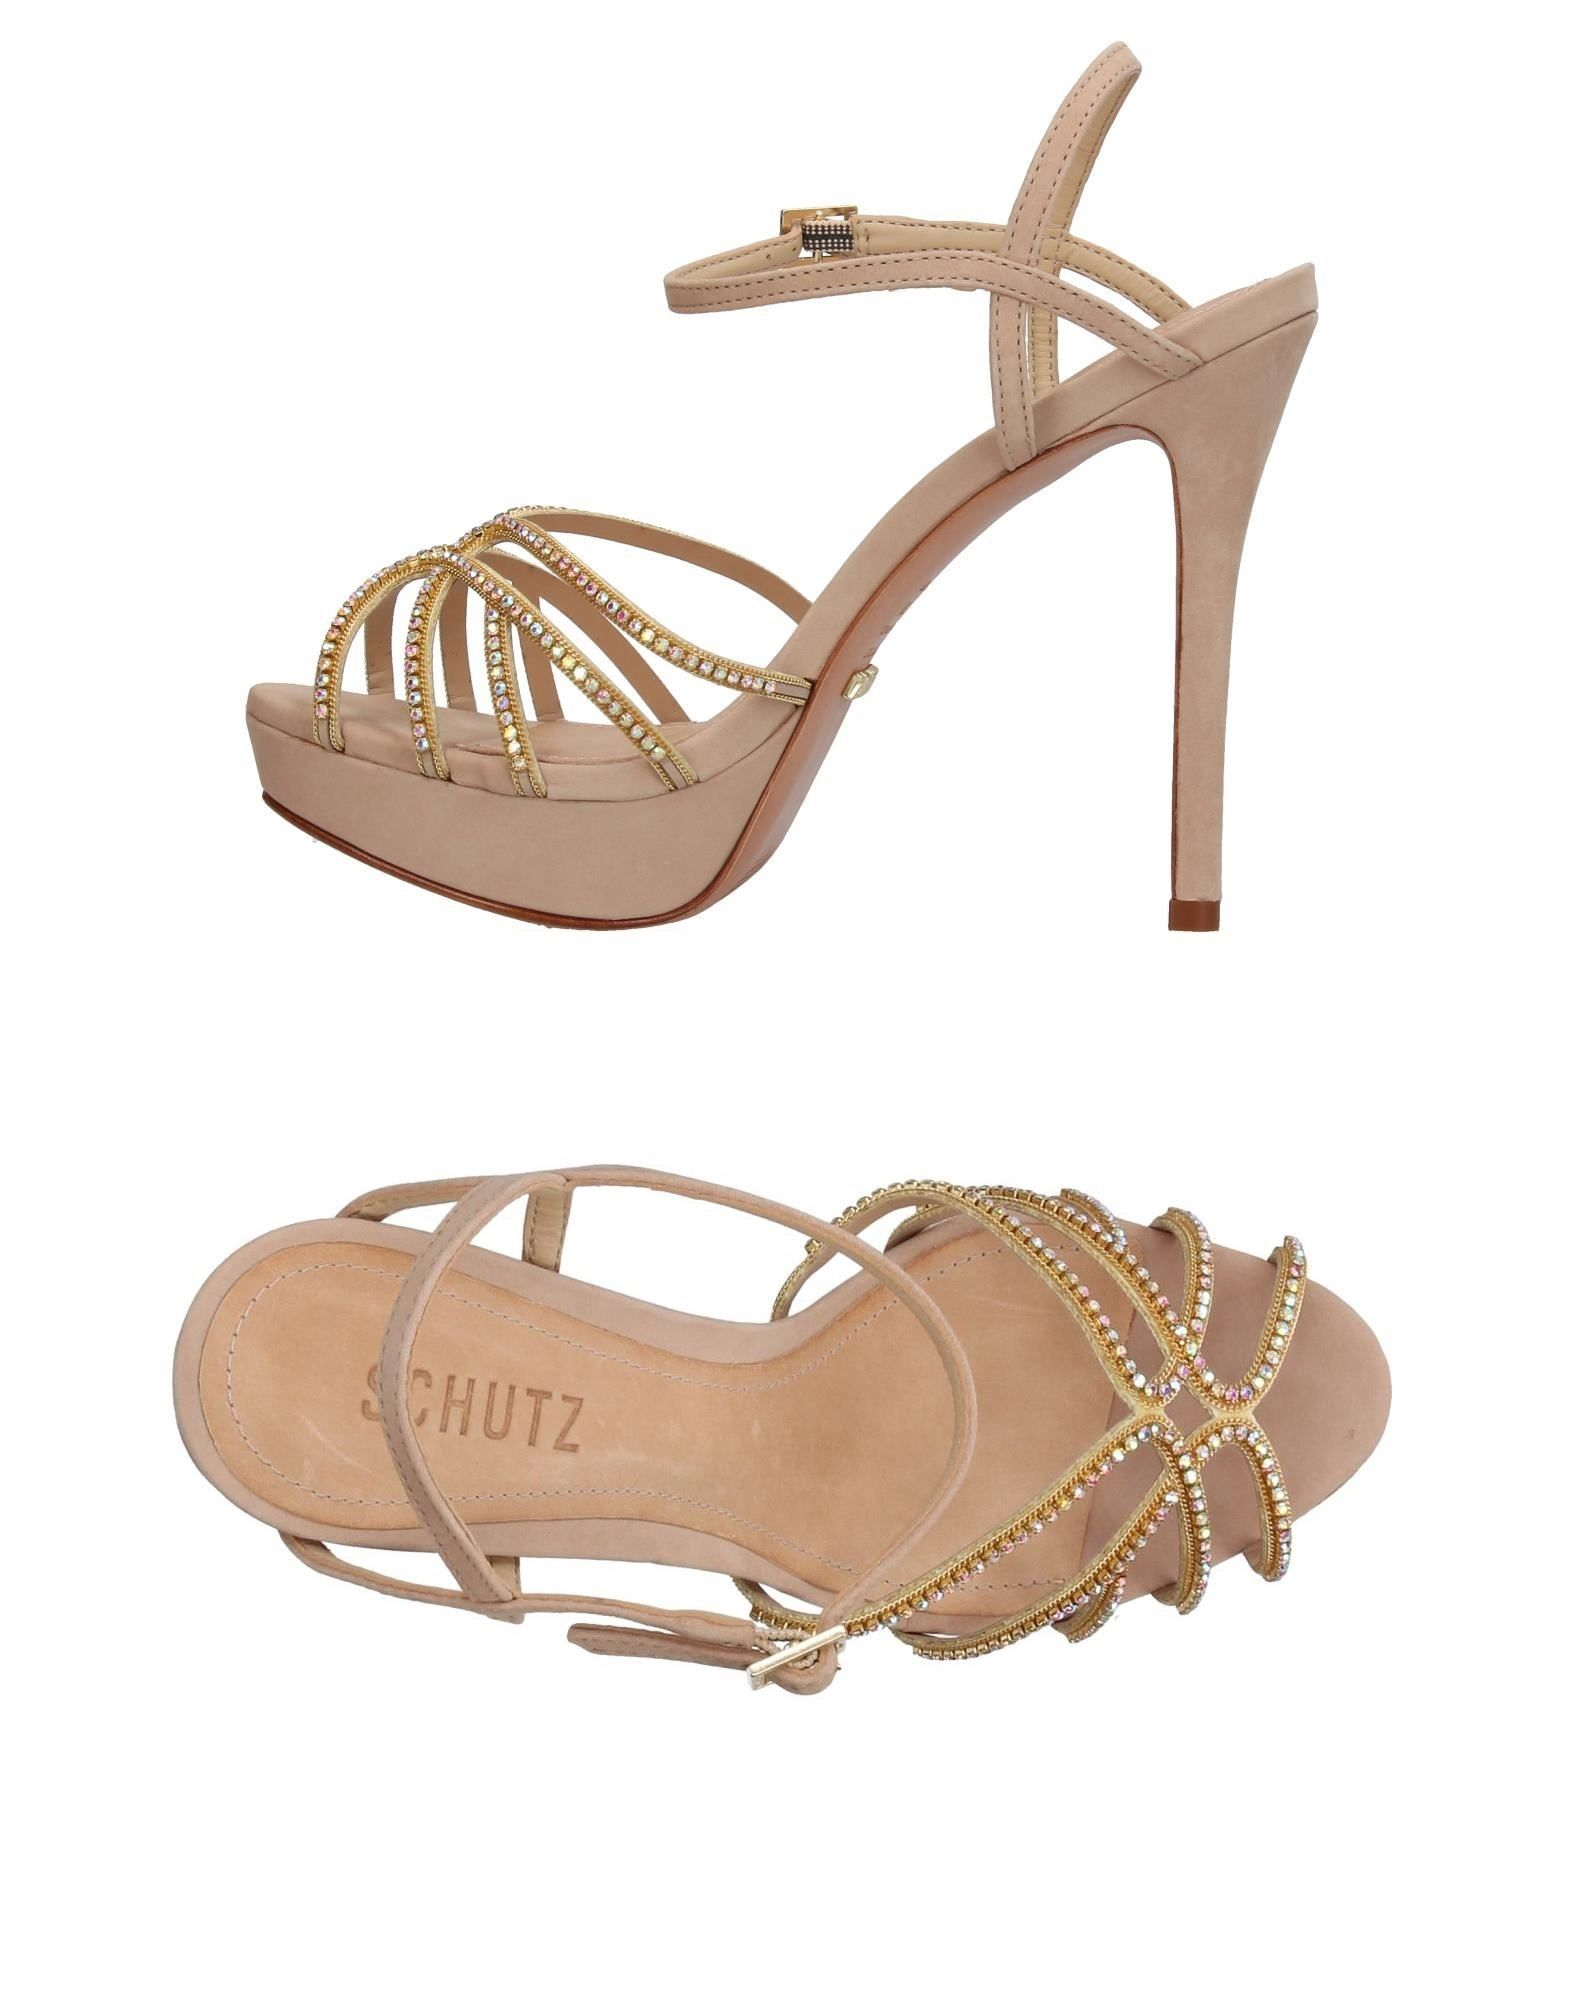 Schutz Sandals Sandals - Women Schutz Sandals Schutz online on  United Kingdom - 11392230FU 3b905a